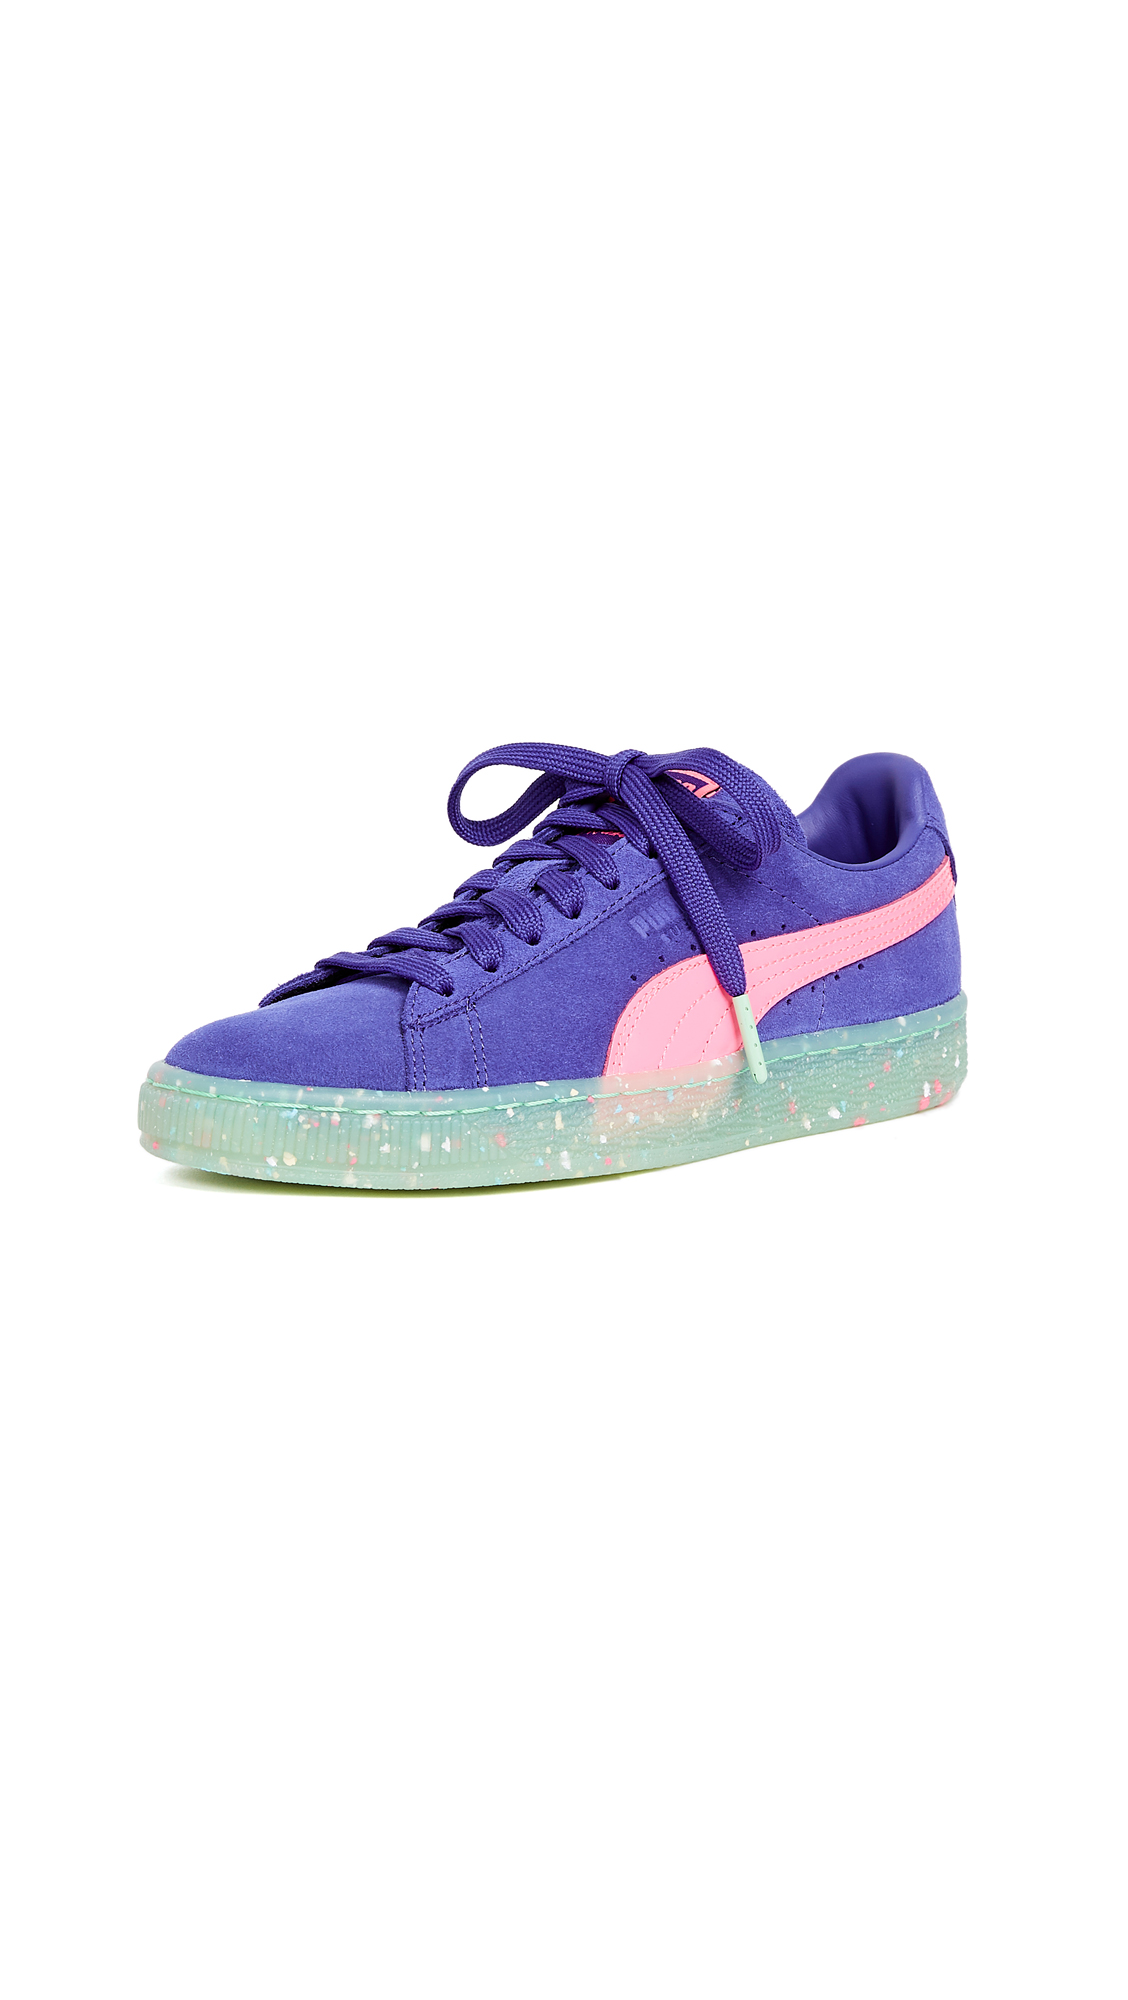 PUMA x SOPHIA WEBSTER Suede Sneakers - Blue/Pink/Green Multi